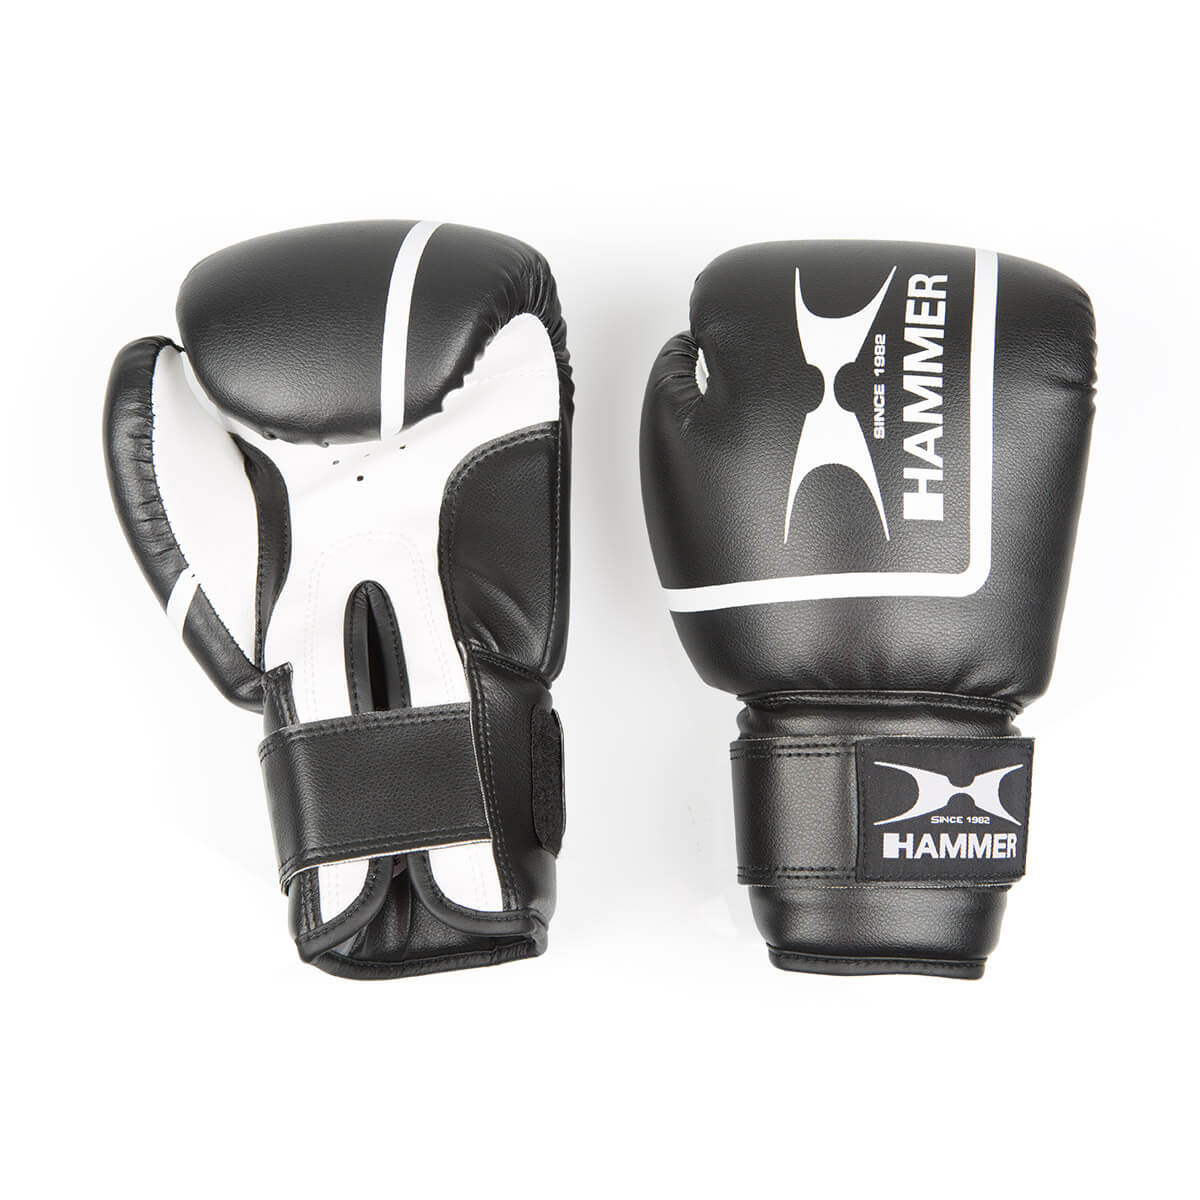 Image of HAMMER BOXING Boxhandschuhe Fit 2 - 6oz